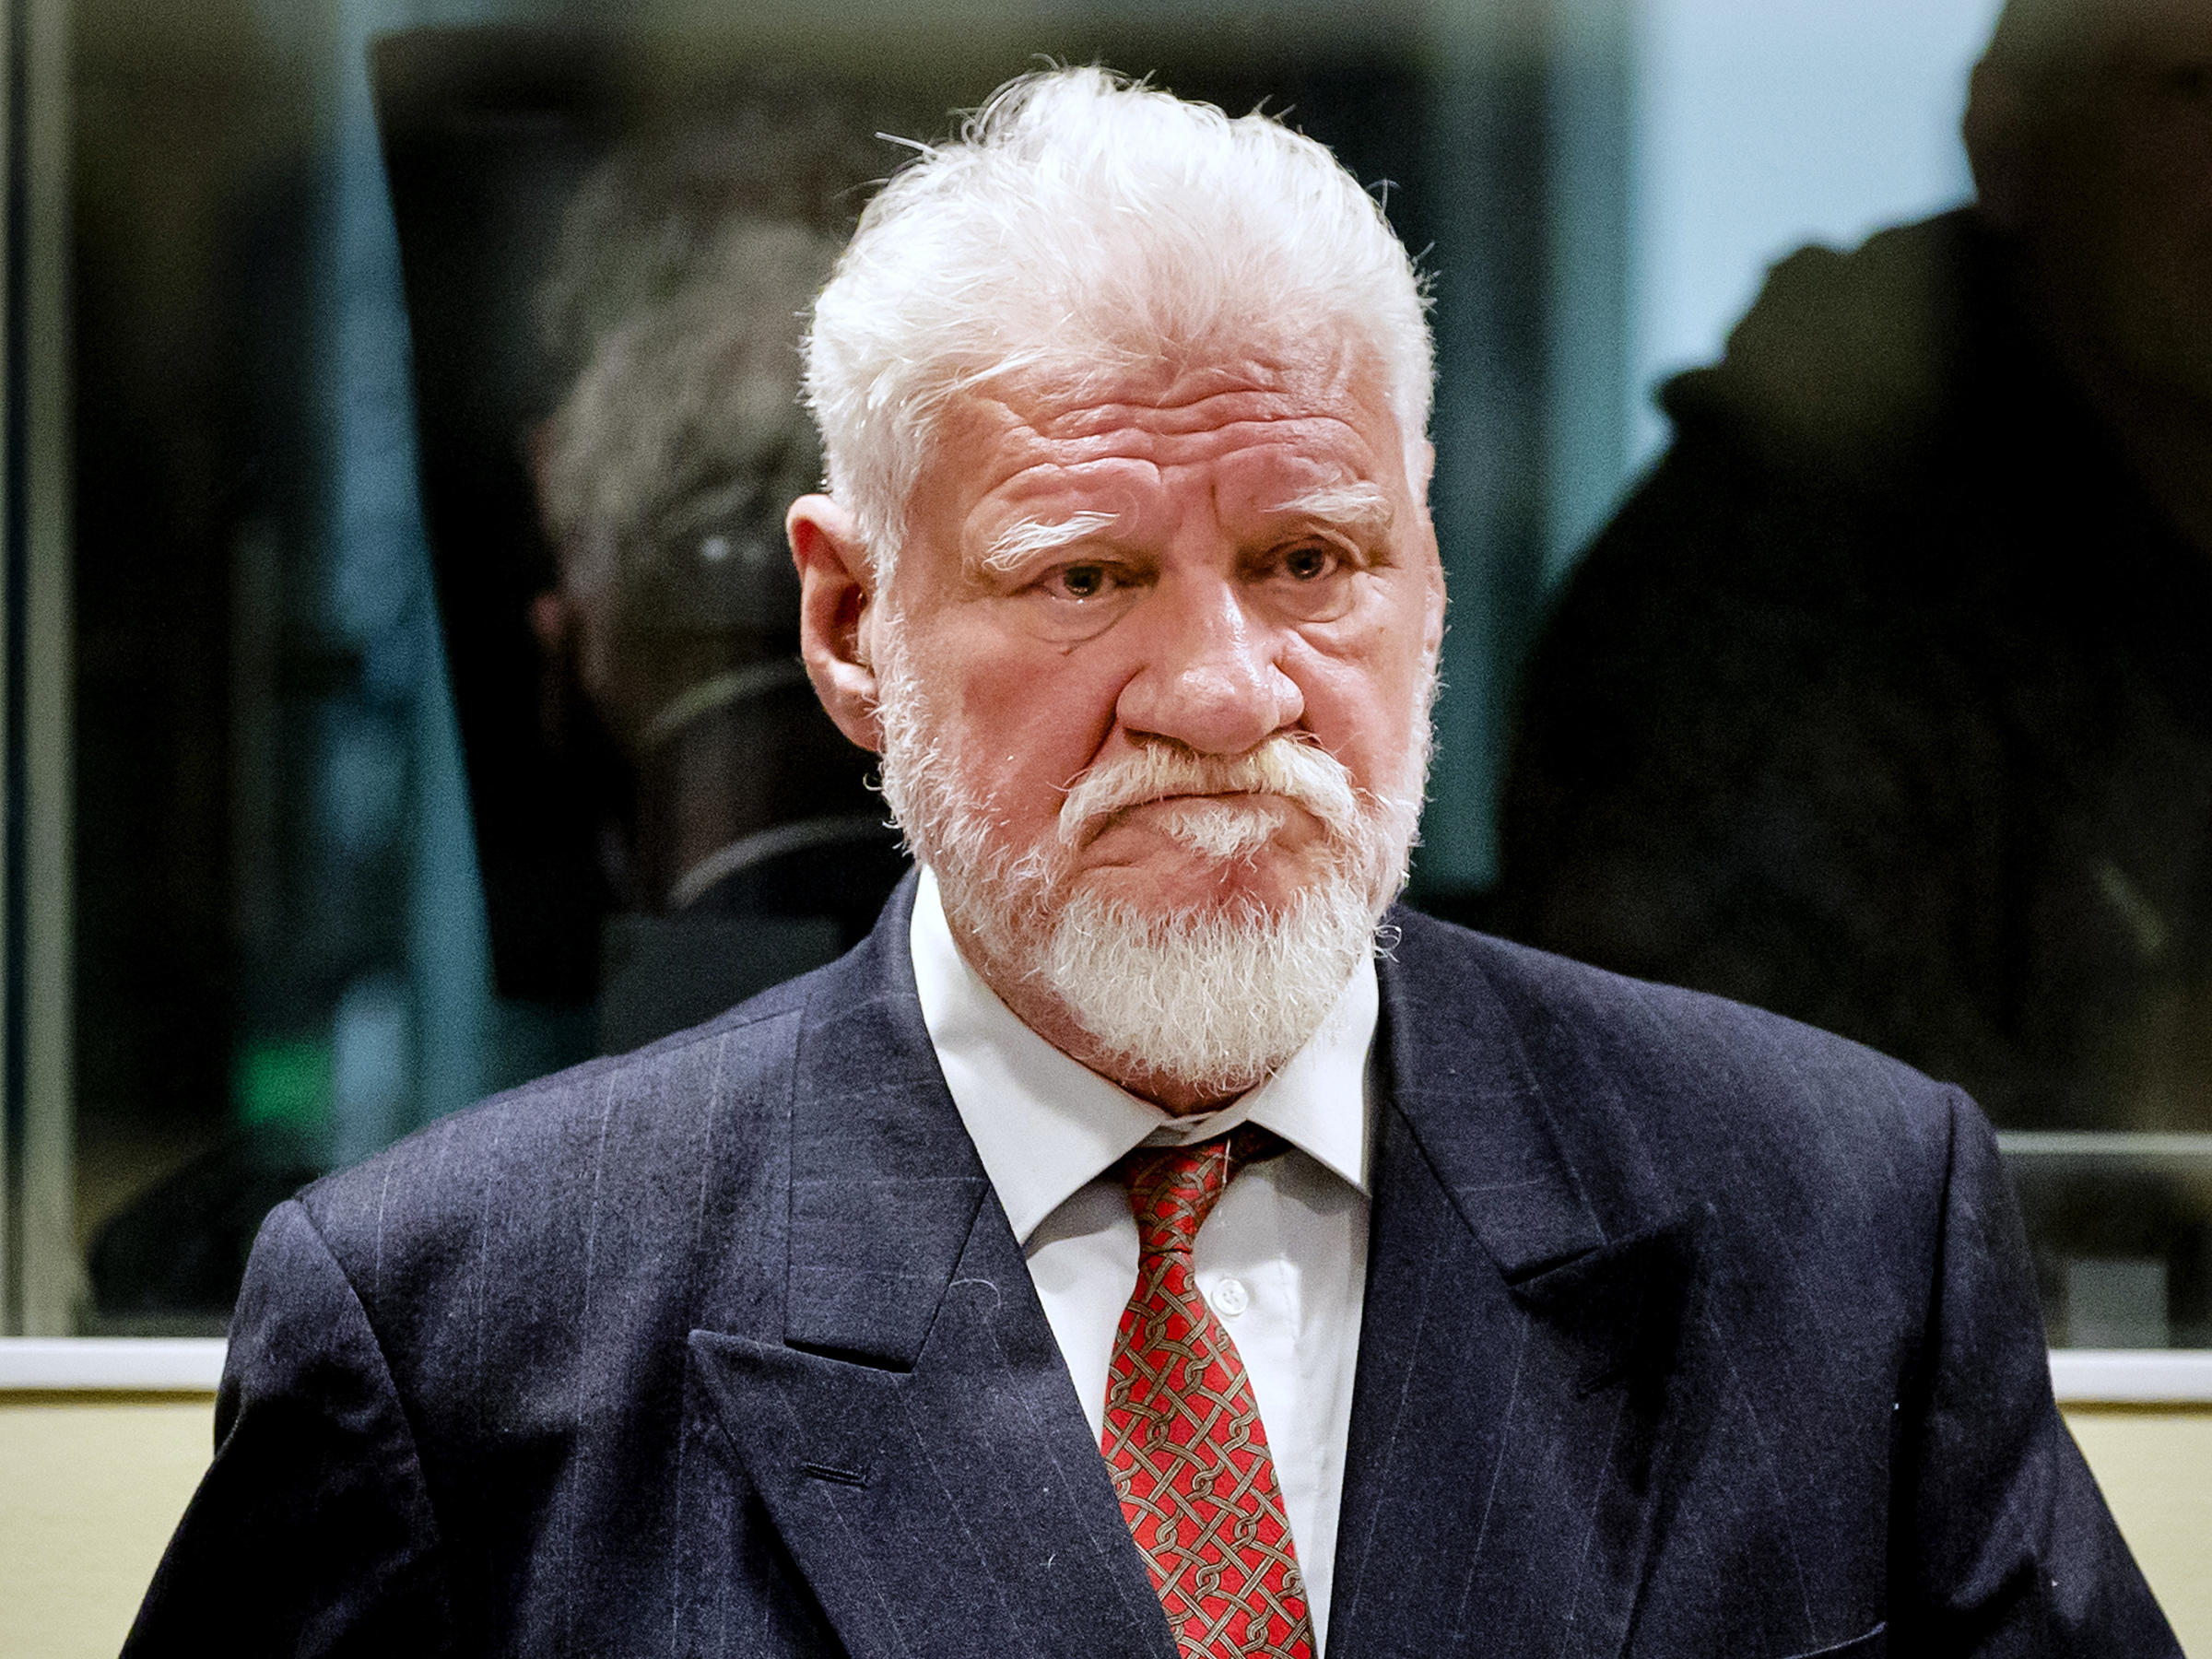 War criminal Slobodan Praljak 'dies after taking poison' in court